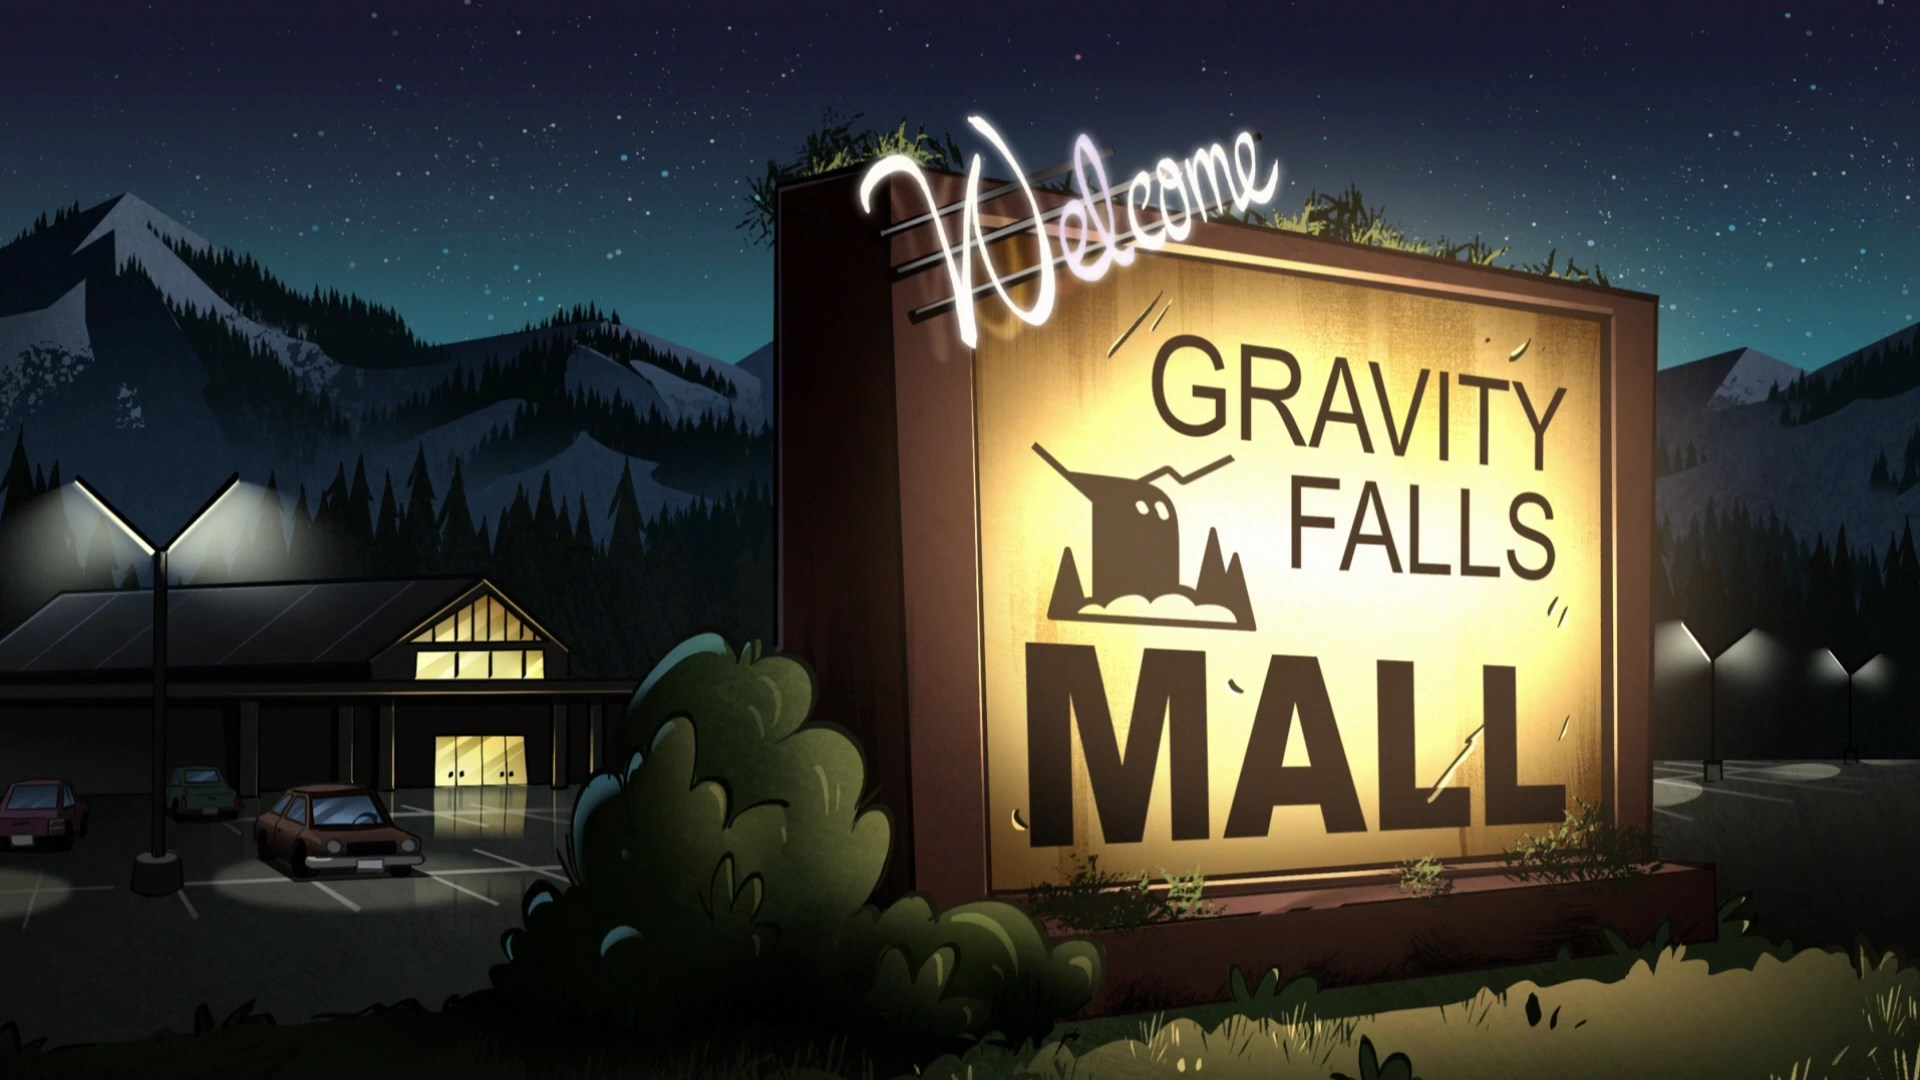 Waddles Gravity Falls Wallpaper Gravity Malls Gravity Falls Wiki Fandom Powered By Wikia